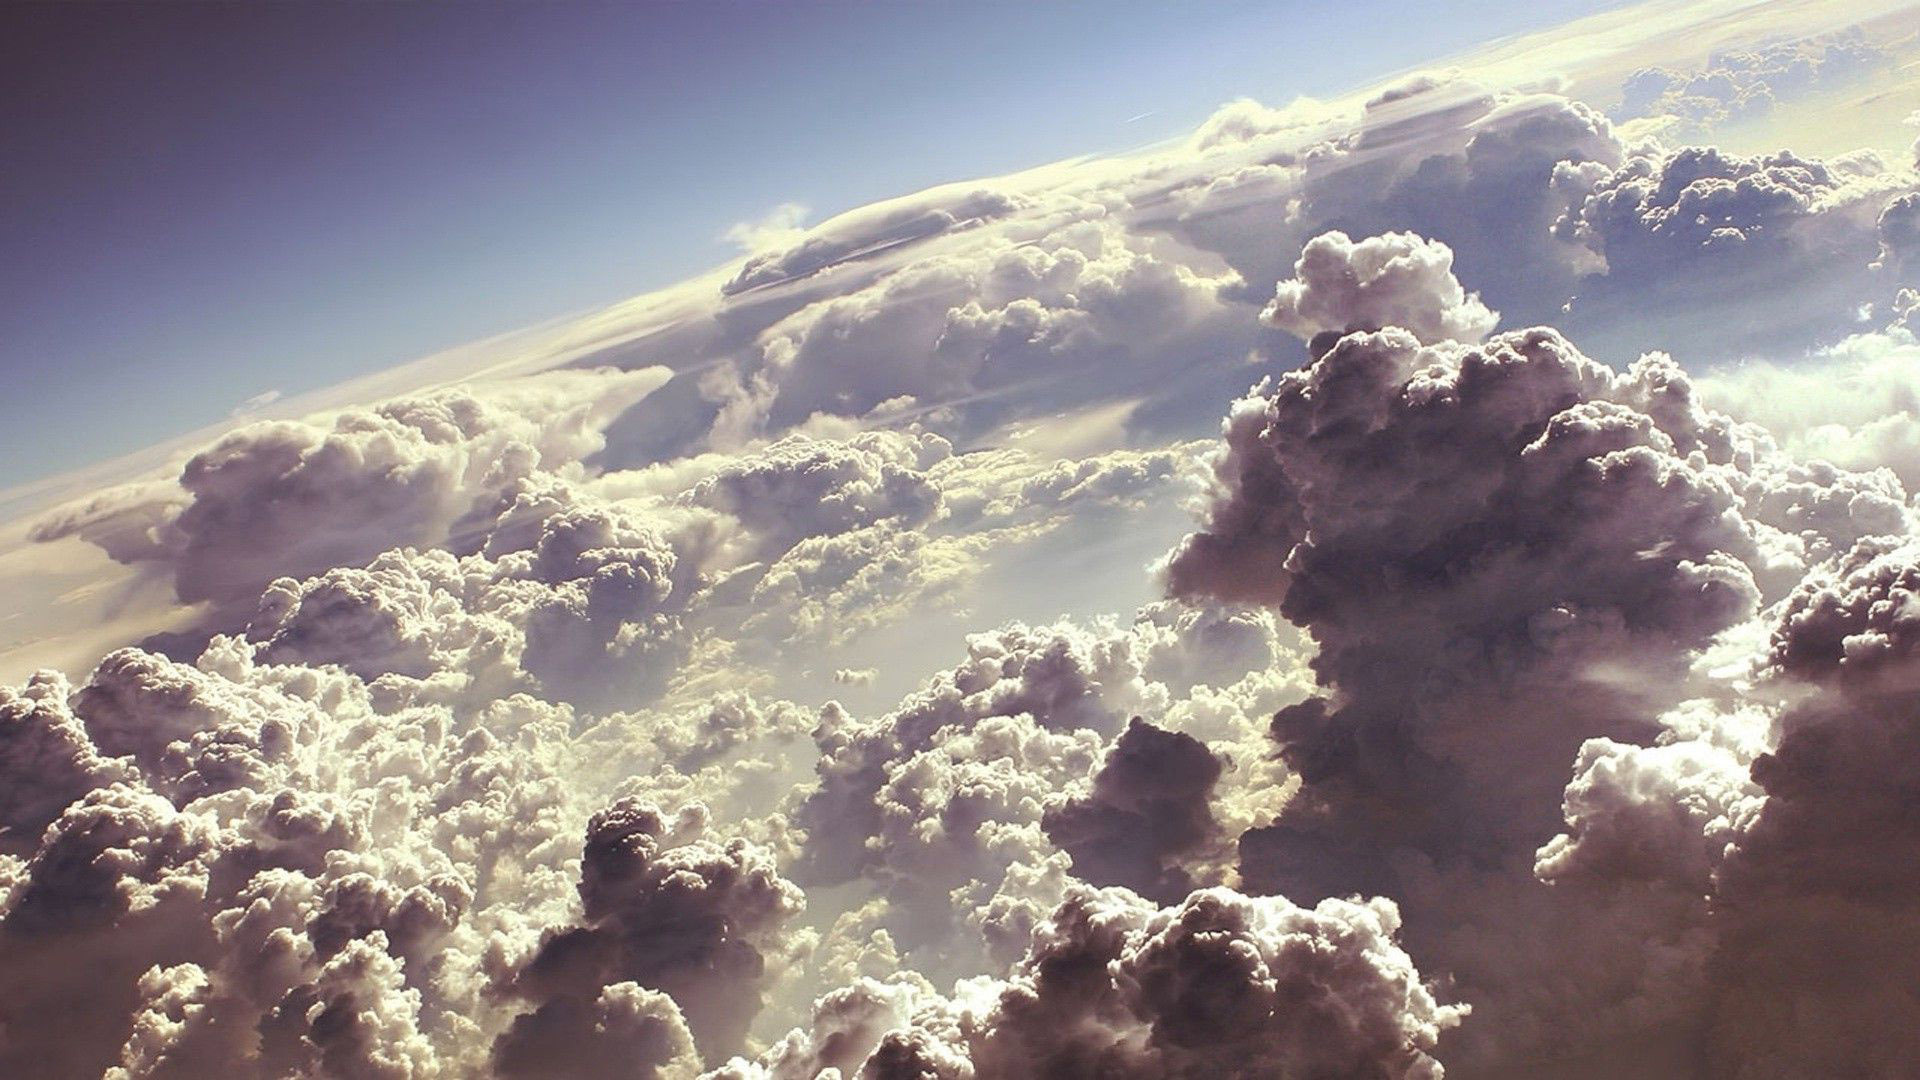 Fluffy white clouds Wallpaper #2487 1253